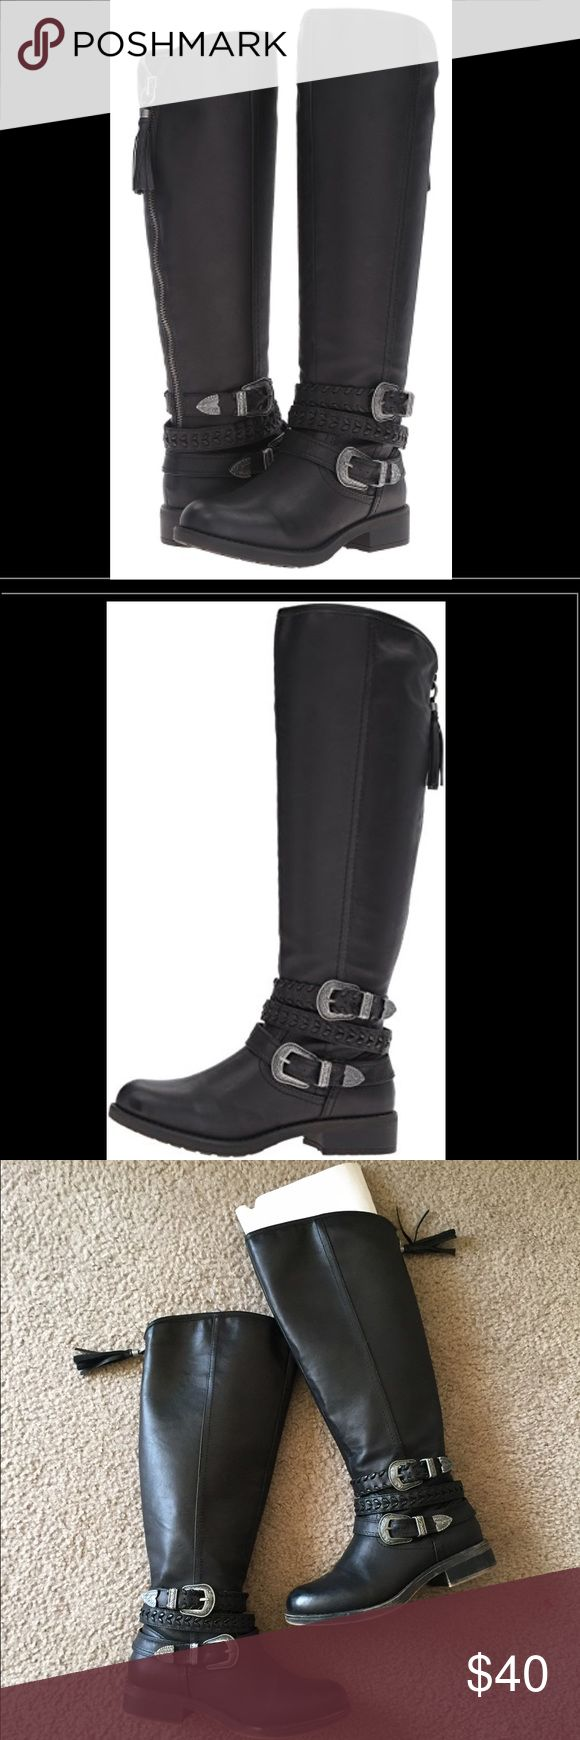 Madden Black Tall Moto Combat Carrage Boots From madden girl! Size 7.5 non smoking home. Adorable boots but I only wore them a few times, just too tall for me. Very comfortable. Carrage is the style. Very cute. Kinda Moto Combat Boho look! I have the box but unsure of how to ship it since it's pretty long. Steve Madden Shoes Combat & Moto Boots